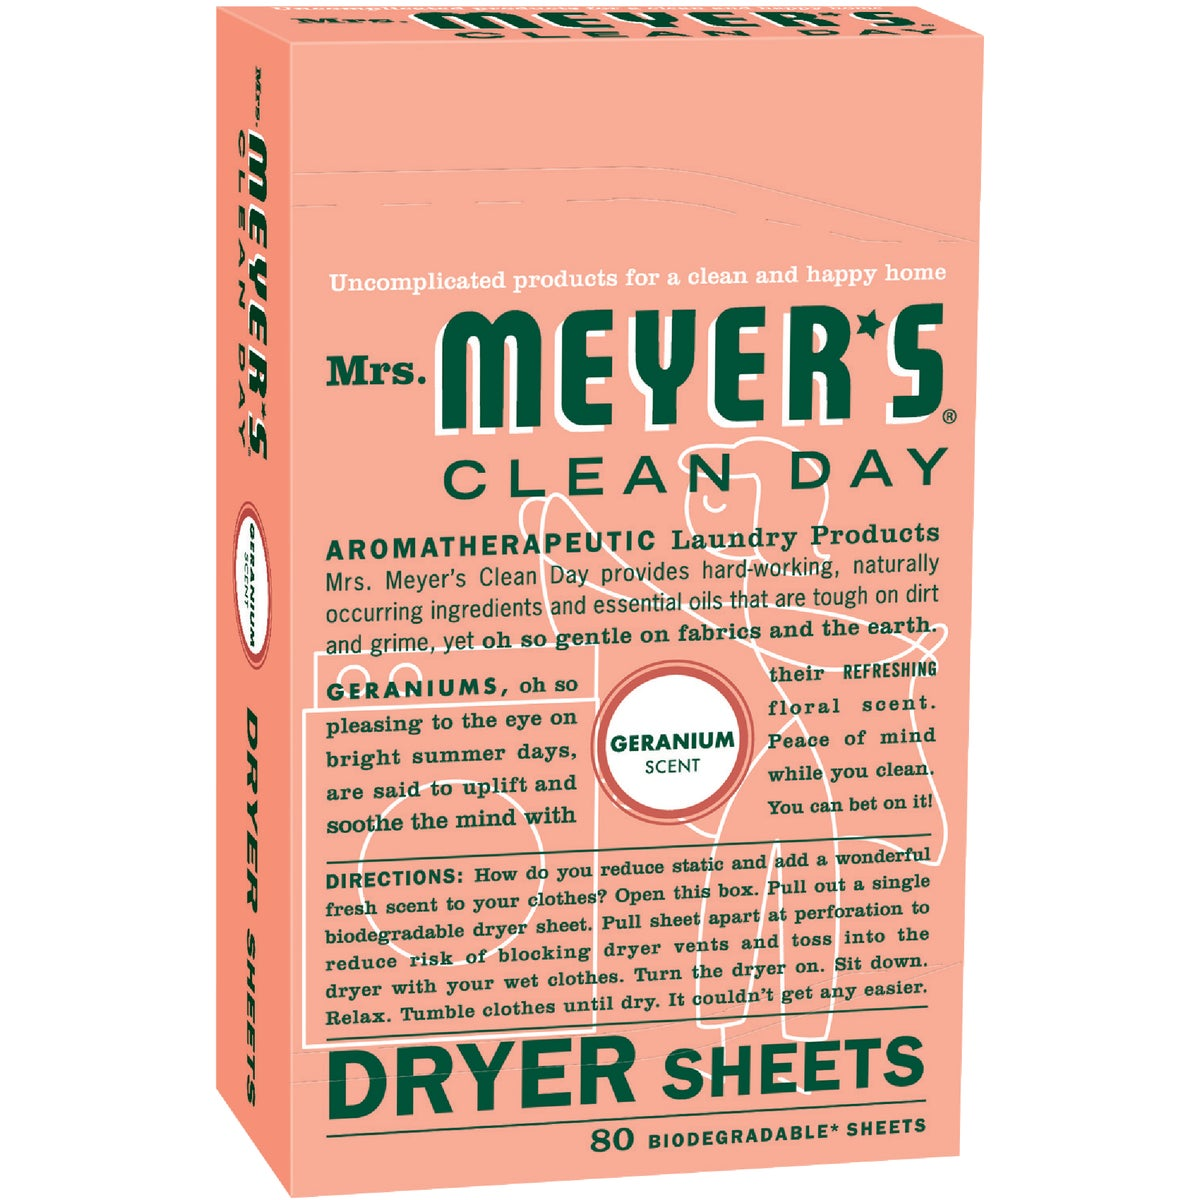 GERANIUM DRYER SHEETS